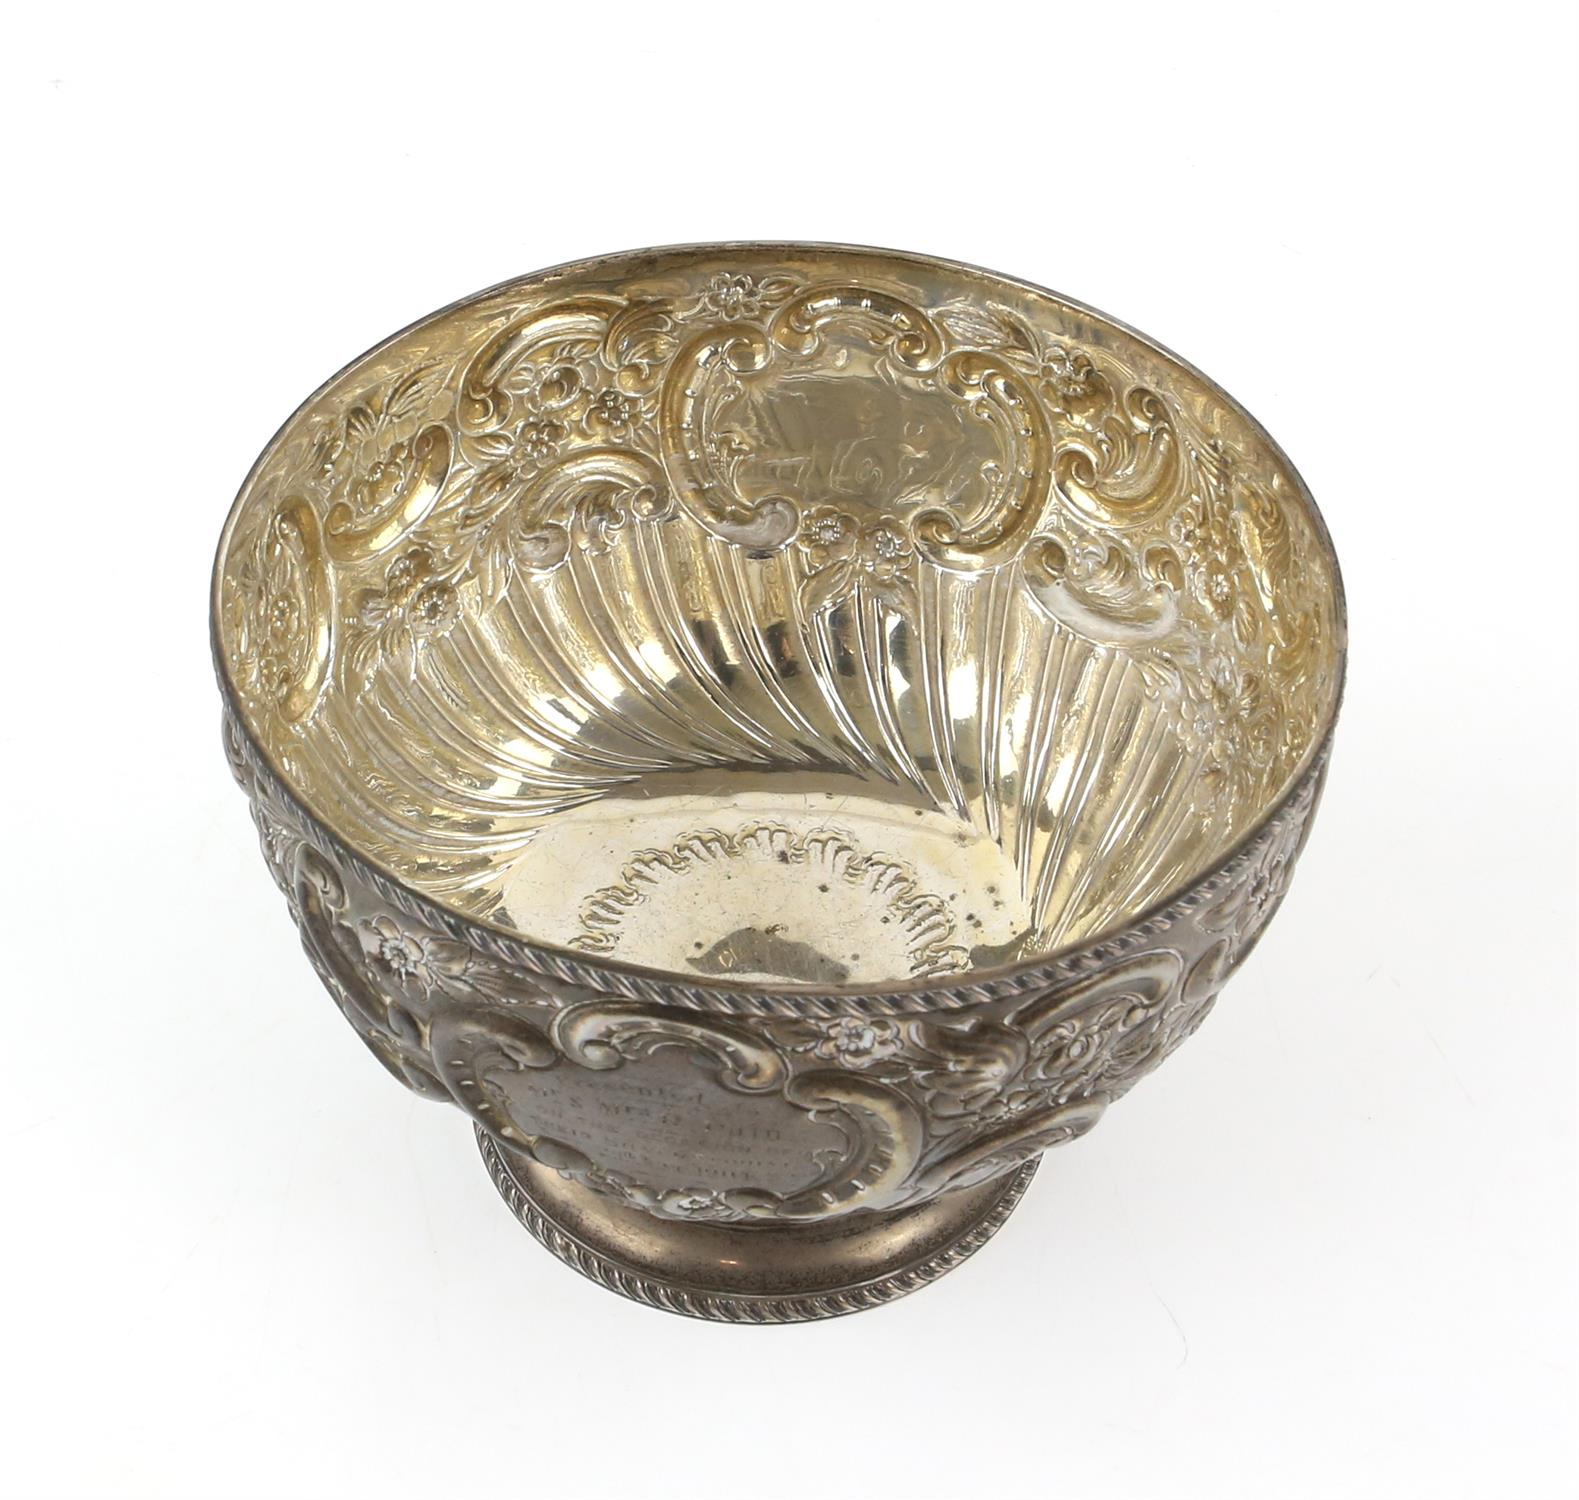 Edward VII silver presentation footed bowl of circular form with floral repousse decoration and - Image 5 of 7